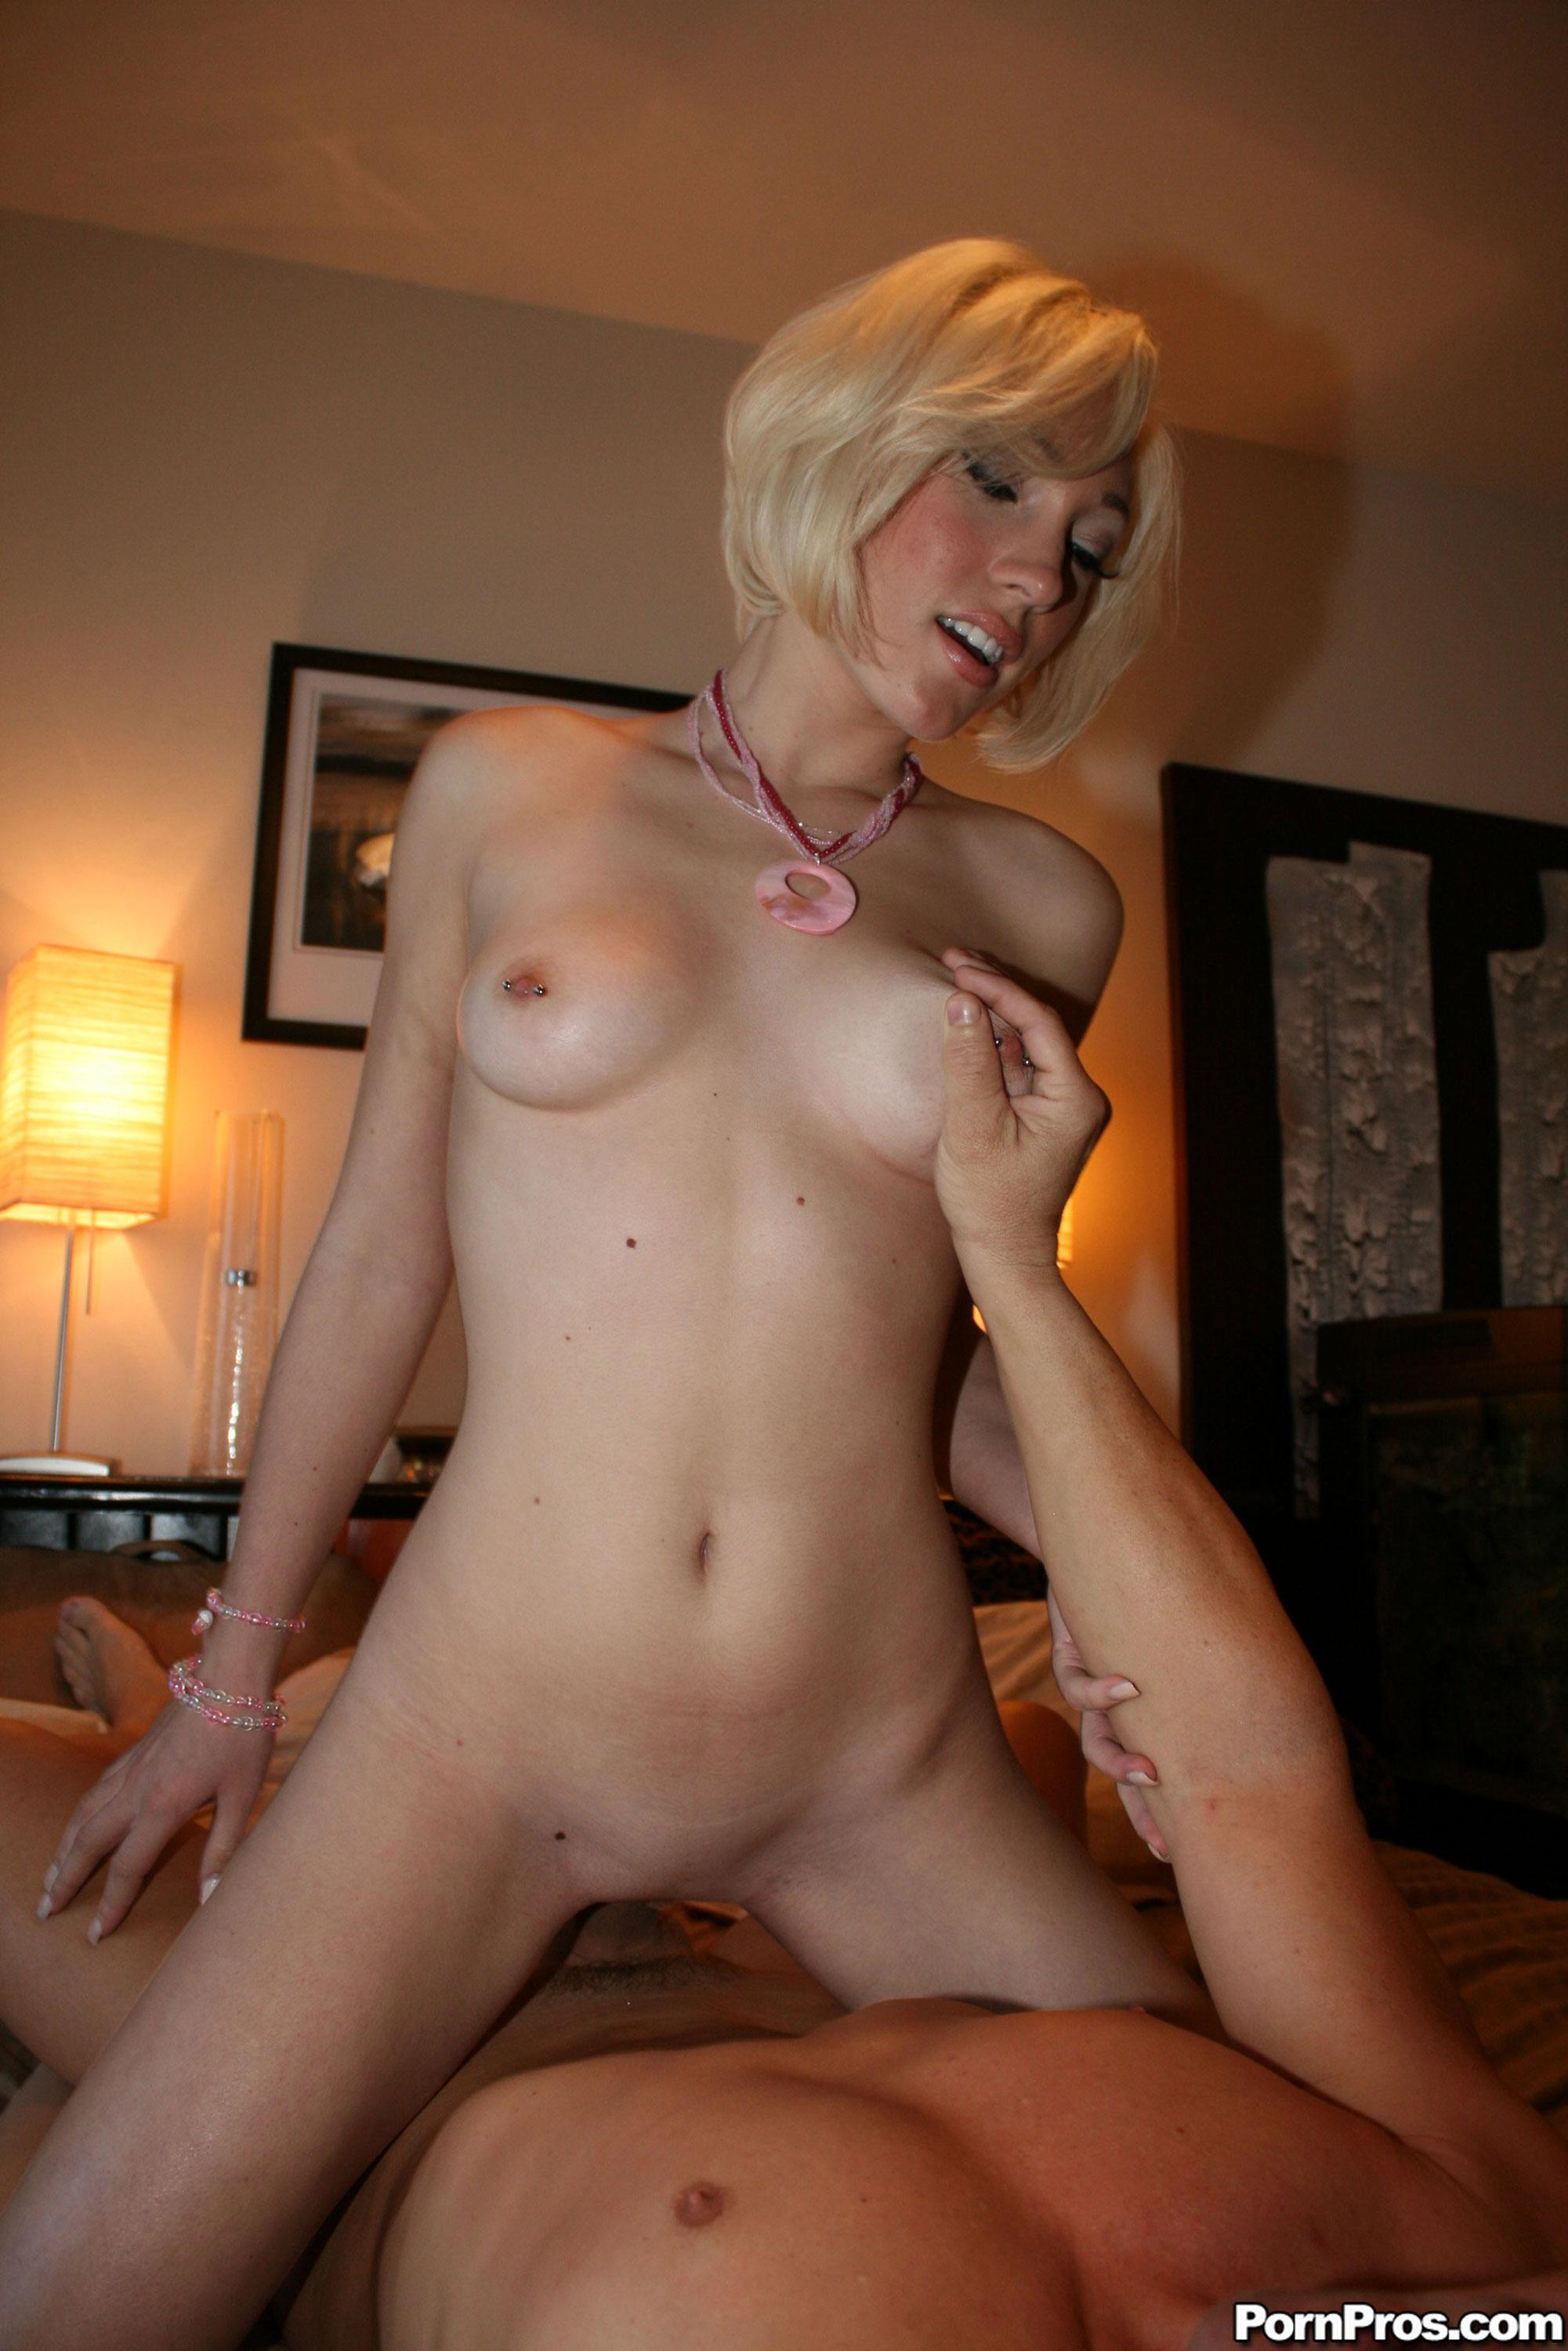 woman naked bed hairy